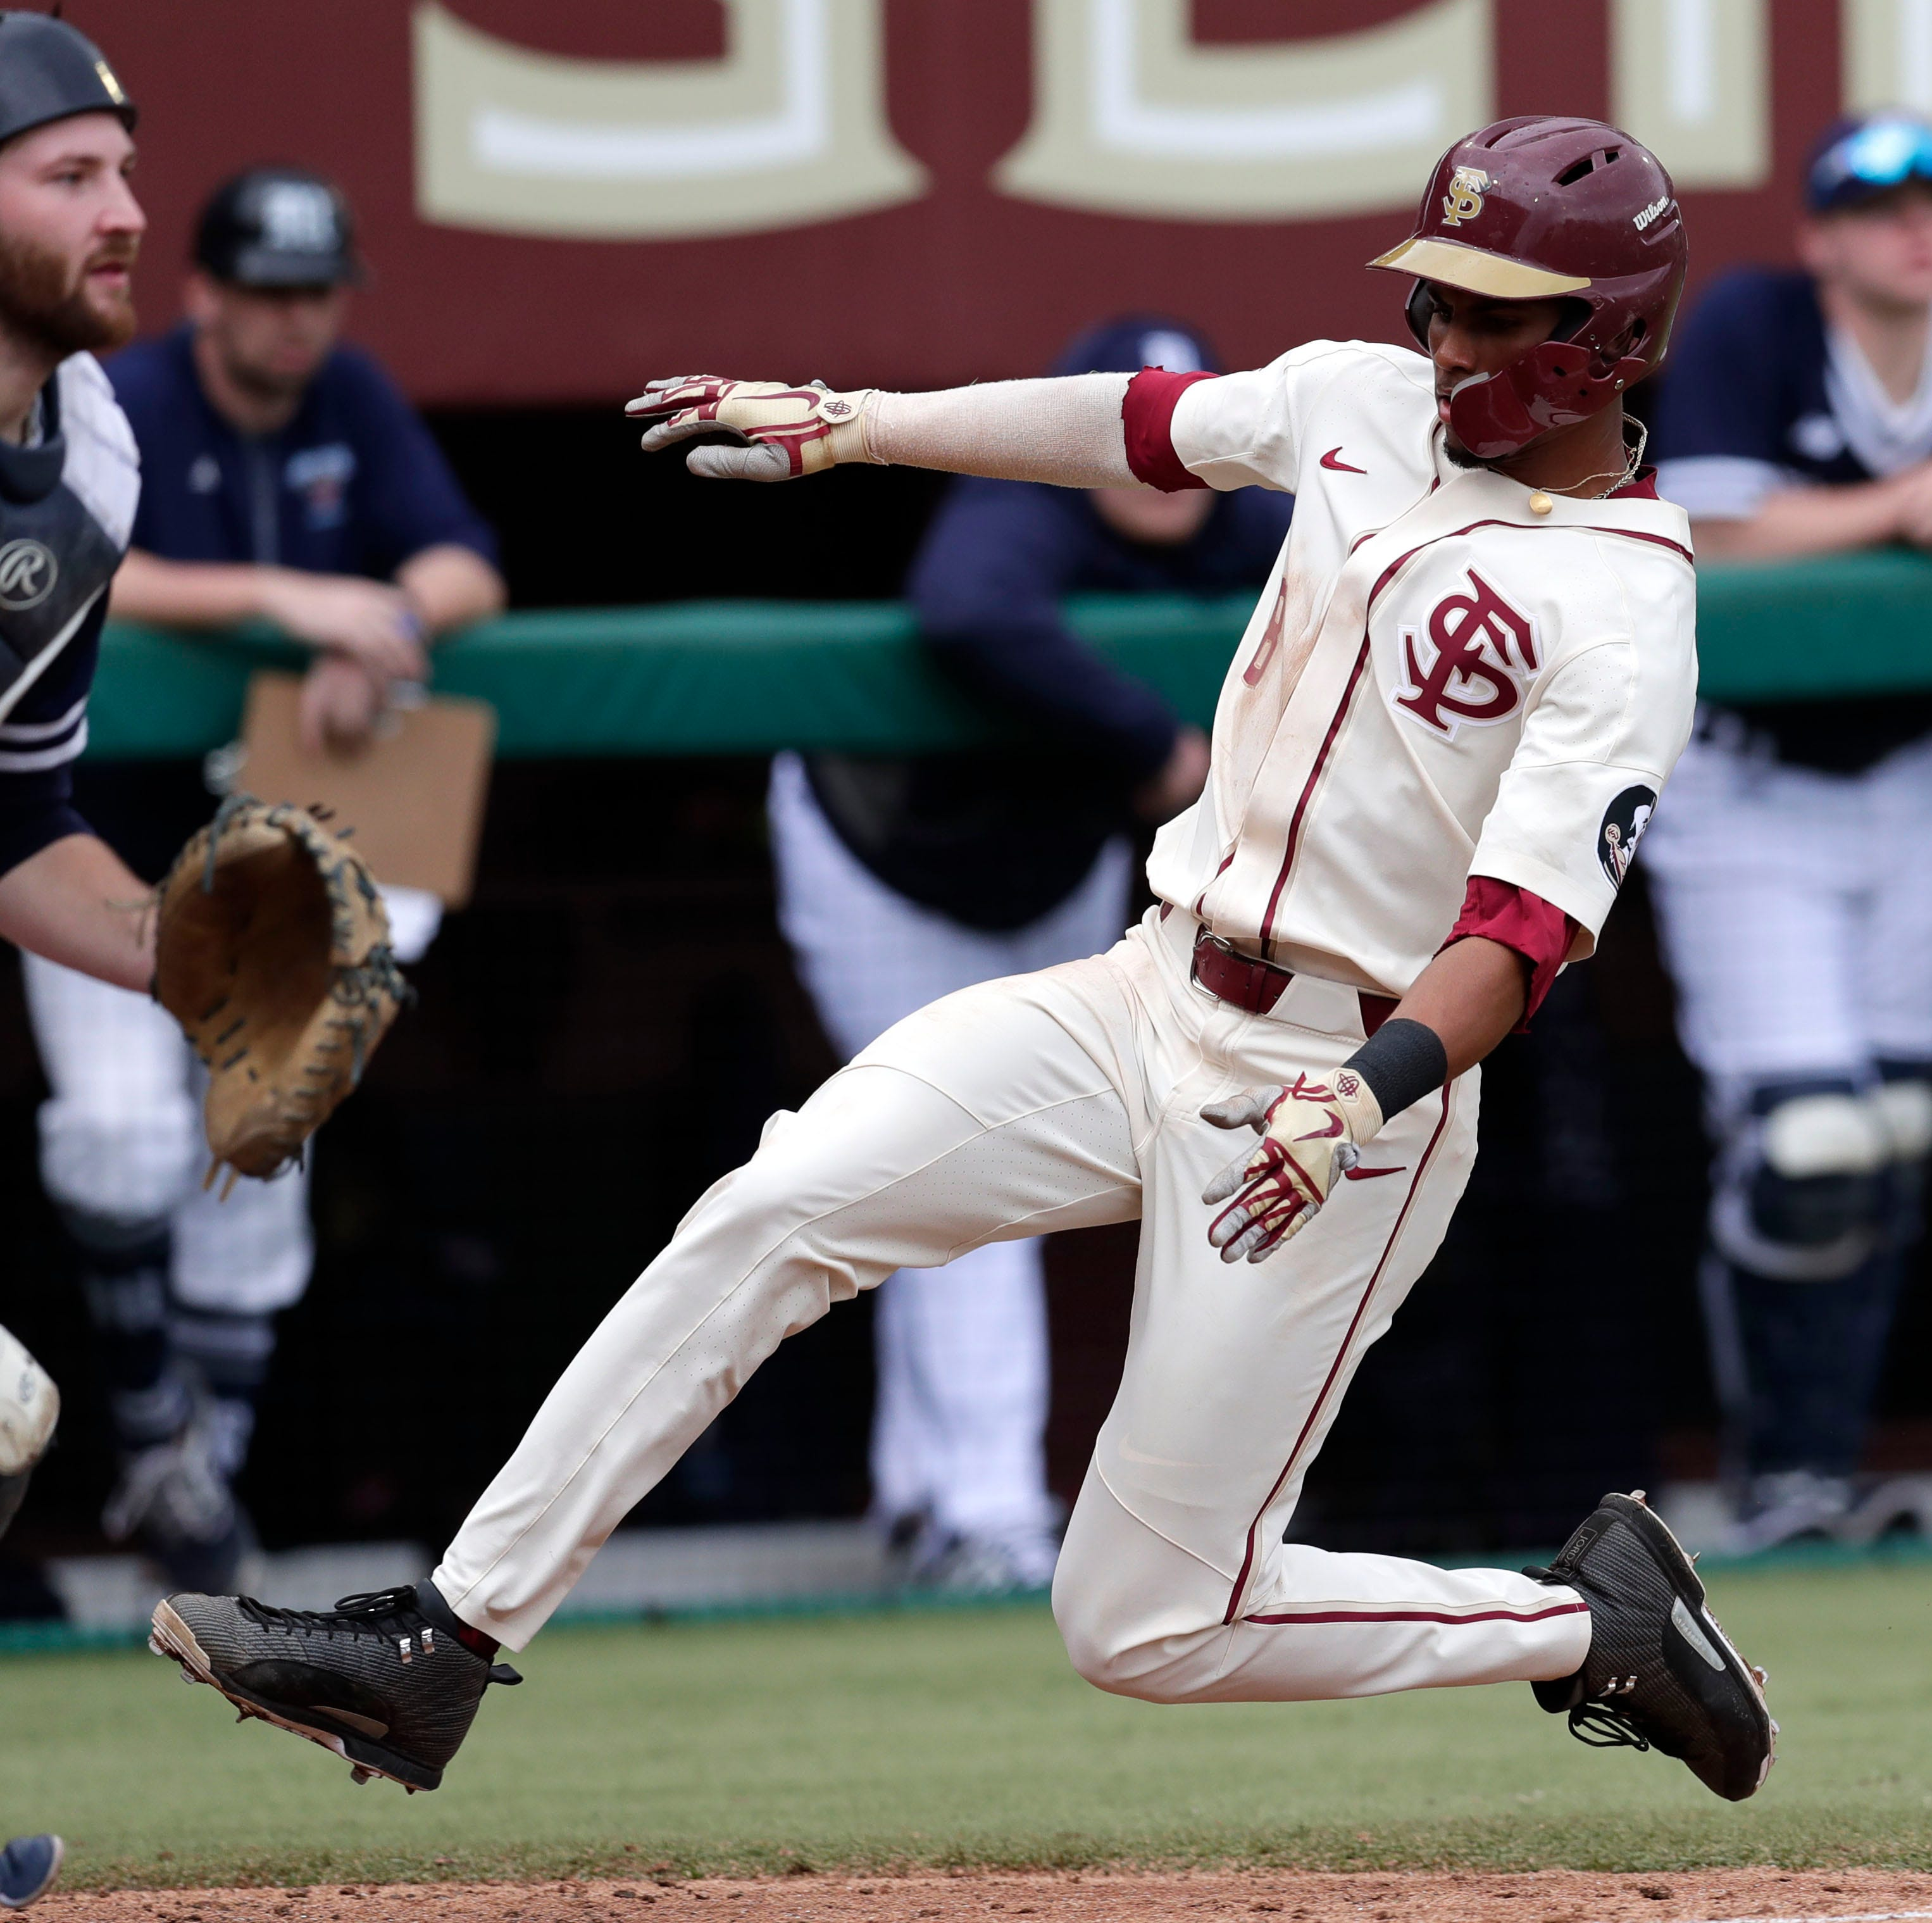 Florida State completes sweep of Maine with 9-1 win